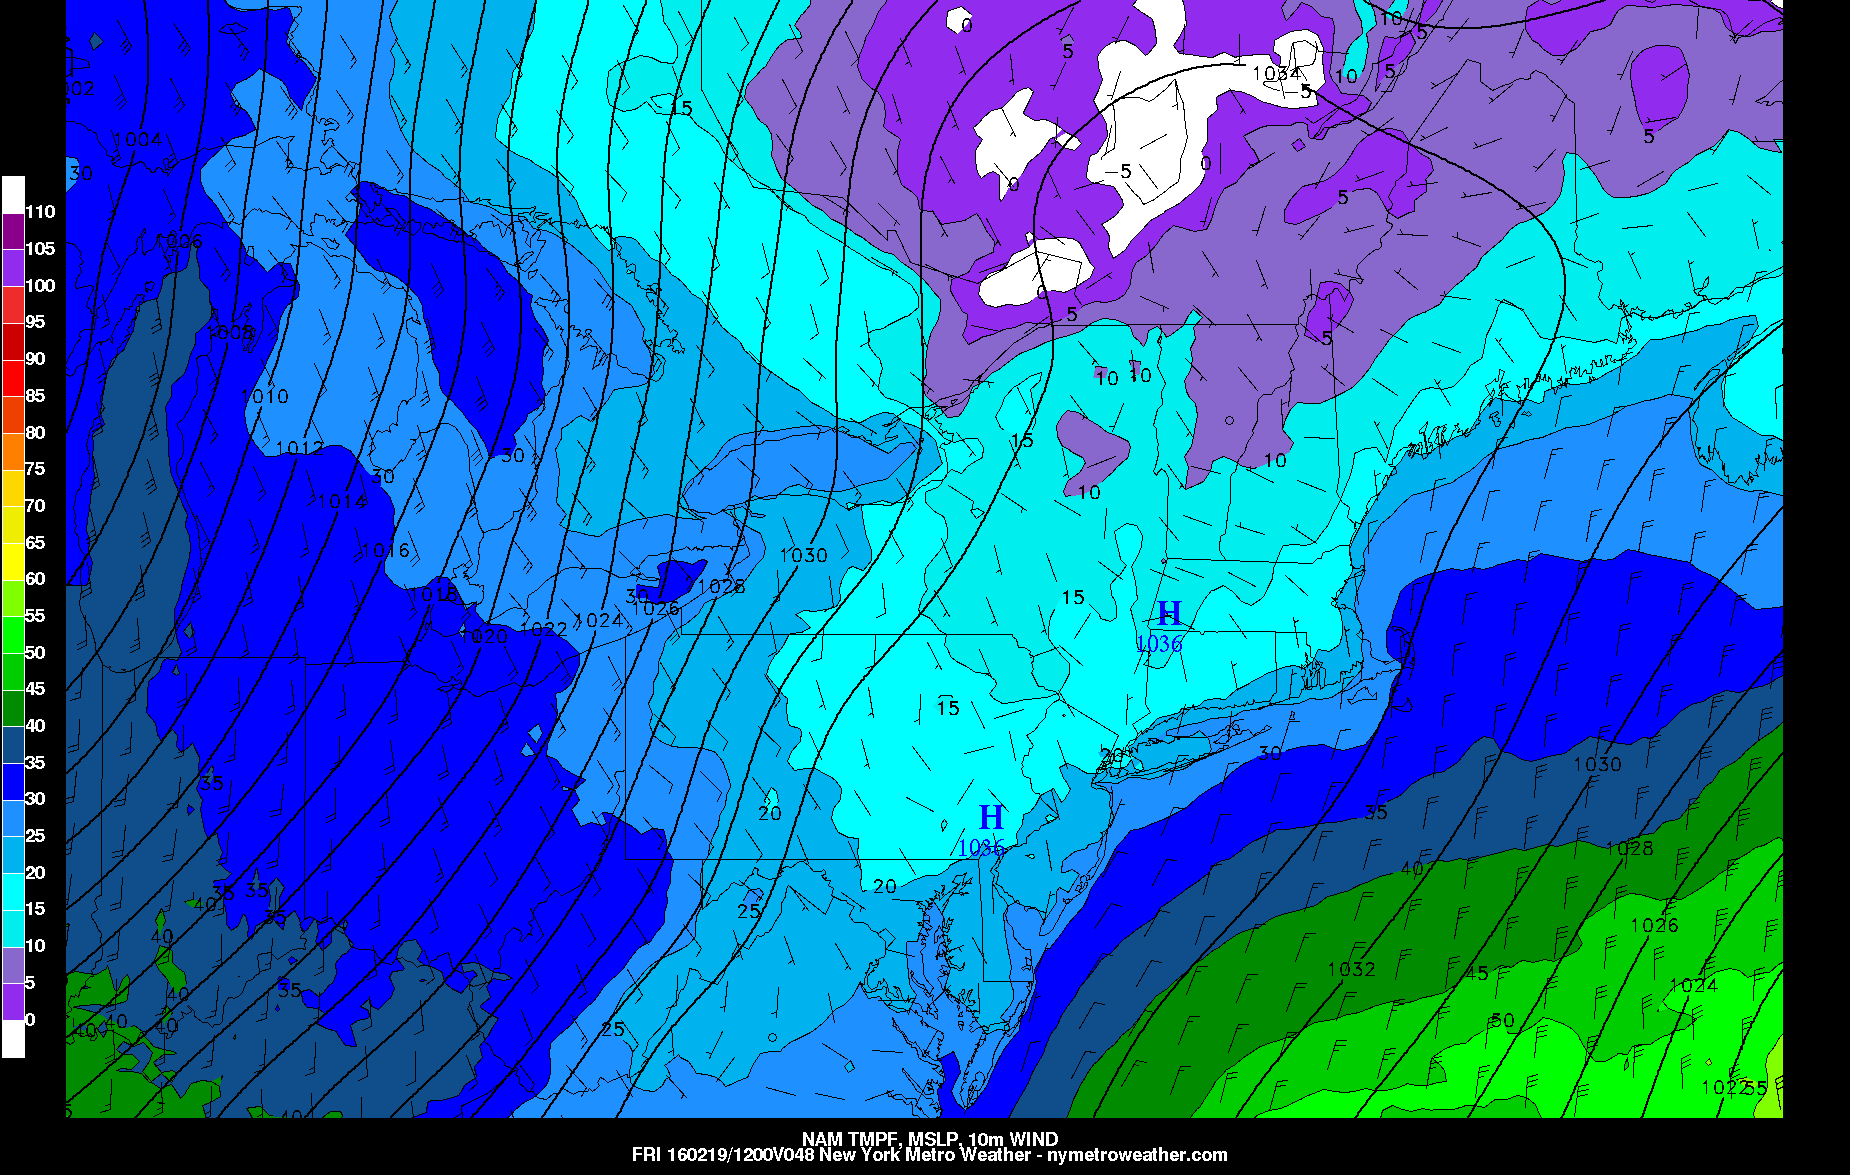 Today's NAM Model valid for Friday morning shows temperatures falling into the teens for most of the area.